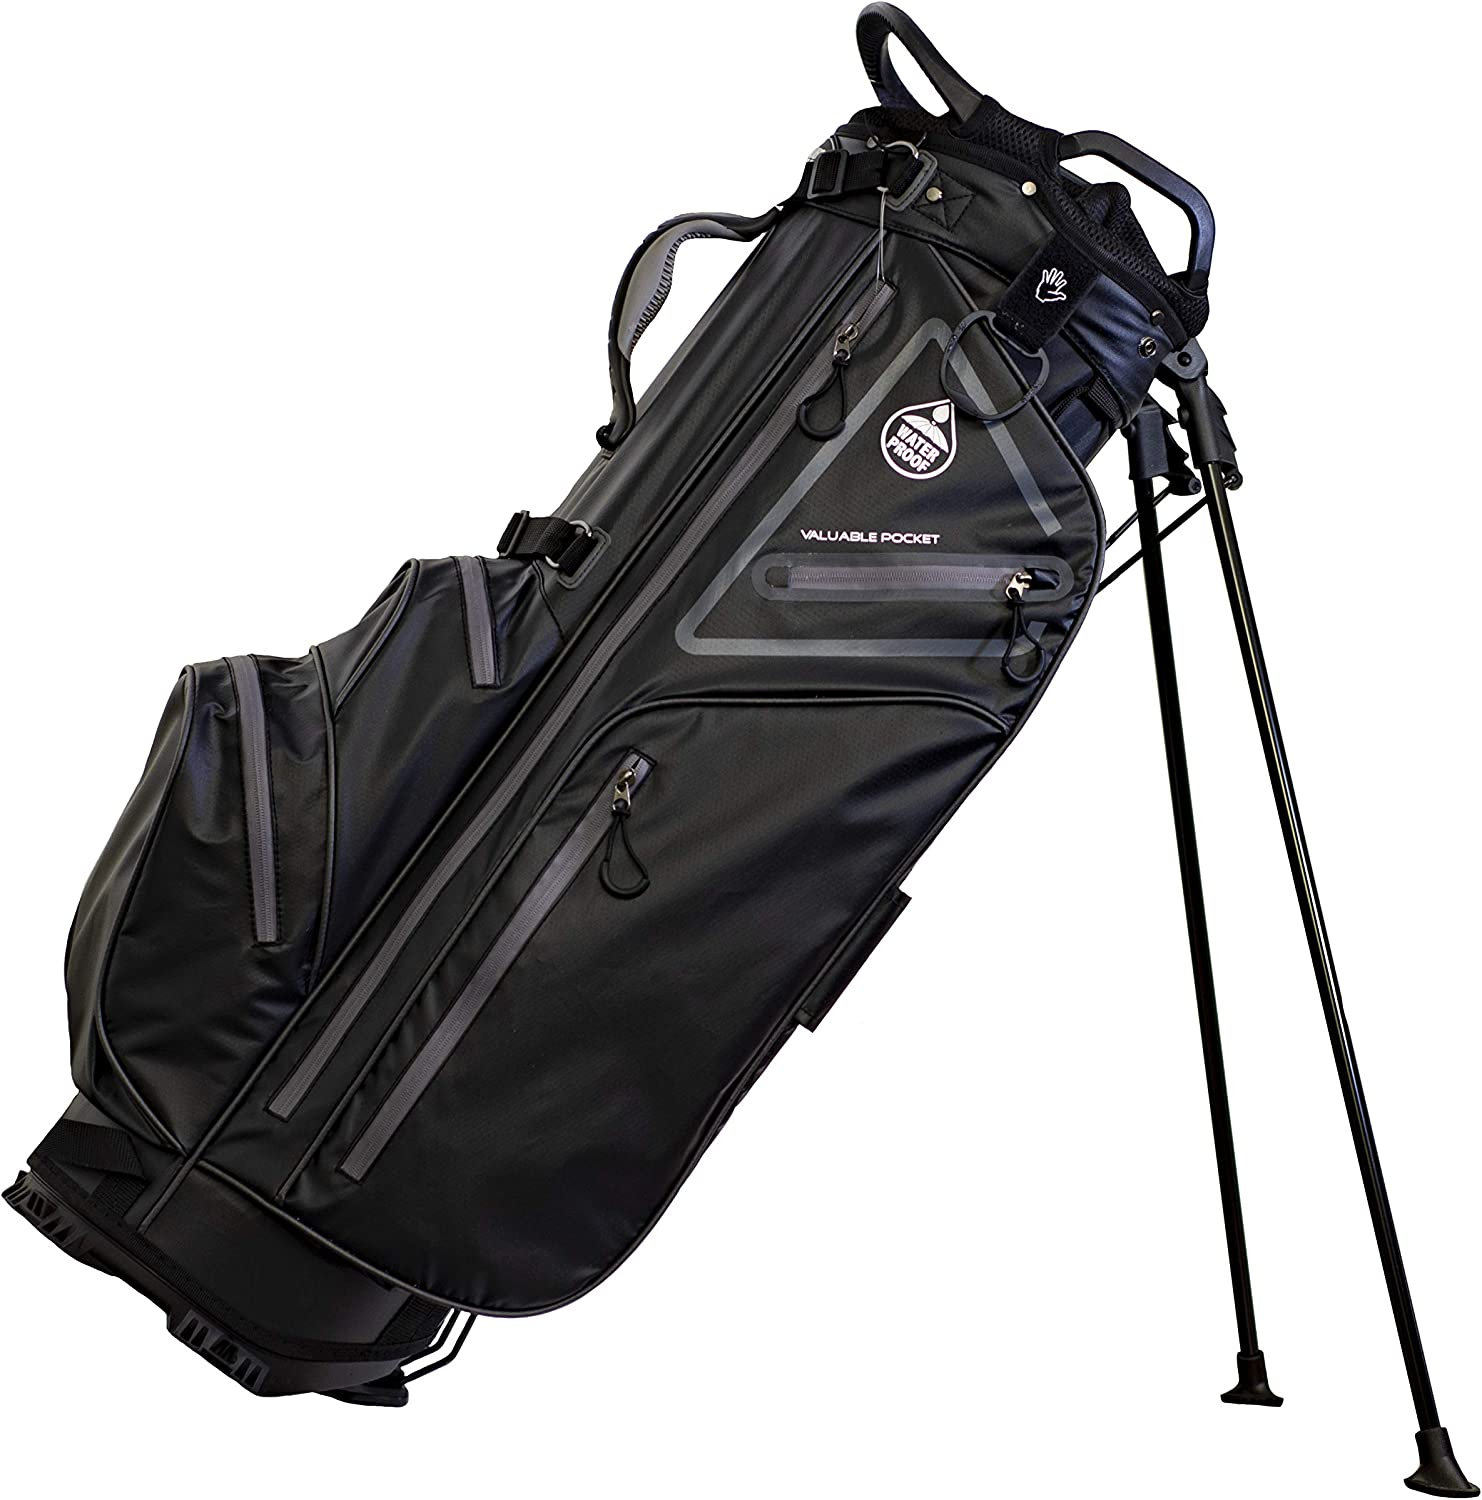 Club Champ Waterproof Stand Complete Free Shipping Golf New color Bag